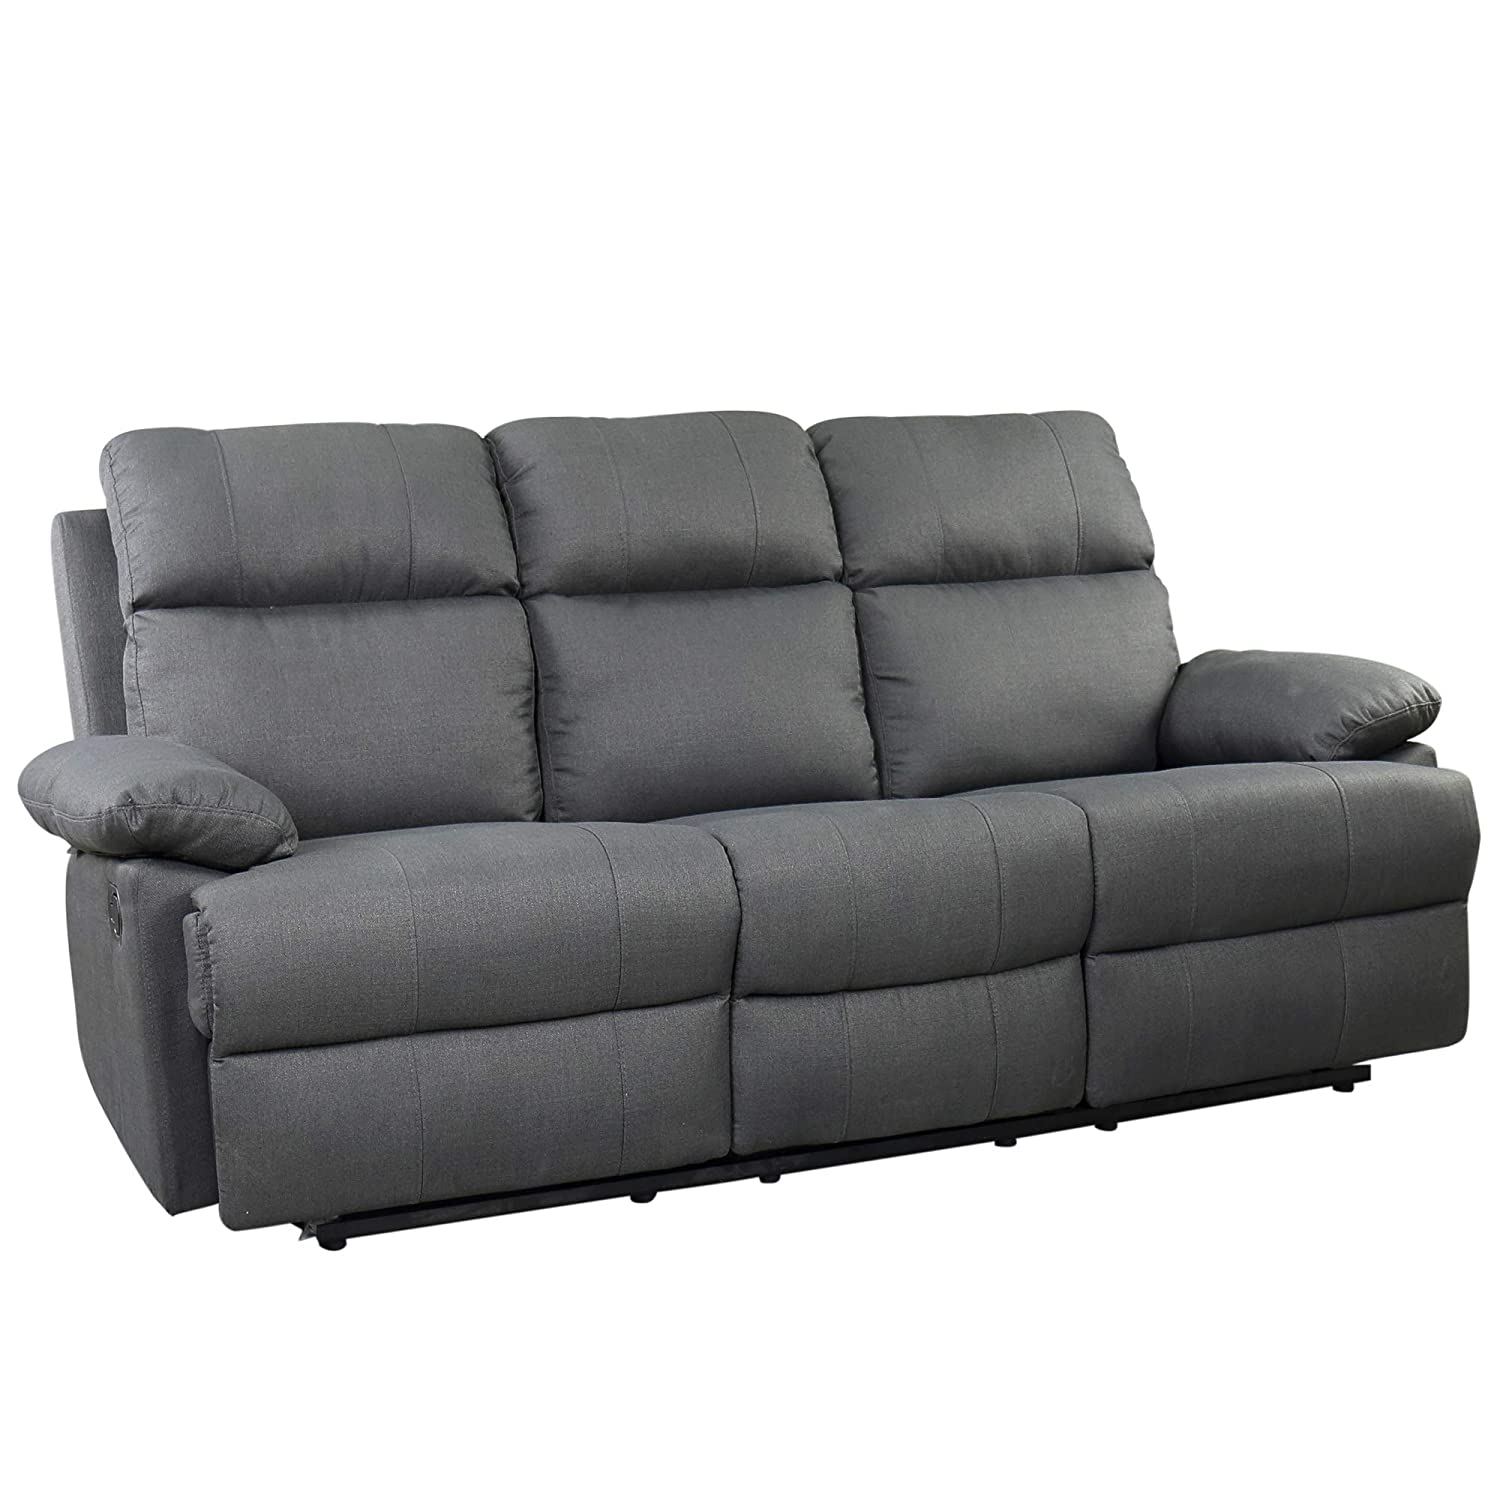 Full Size of Sofa Ohne Lehne Mondo Bezug Blaues Regal Rückwand Mit Relaxfunktion Elektrisch Ligne Roset Petrol Alternatives Gelb Boxspring Schlaffunktion Heimkino Hocker Sofa Sofa Ohne Lehne